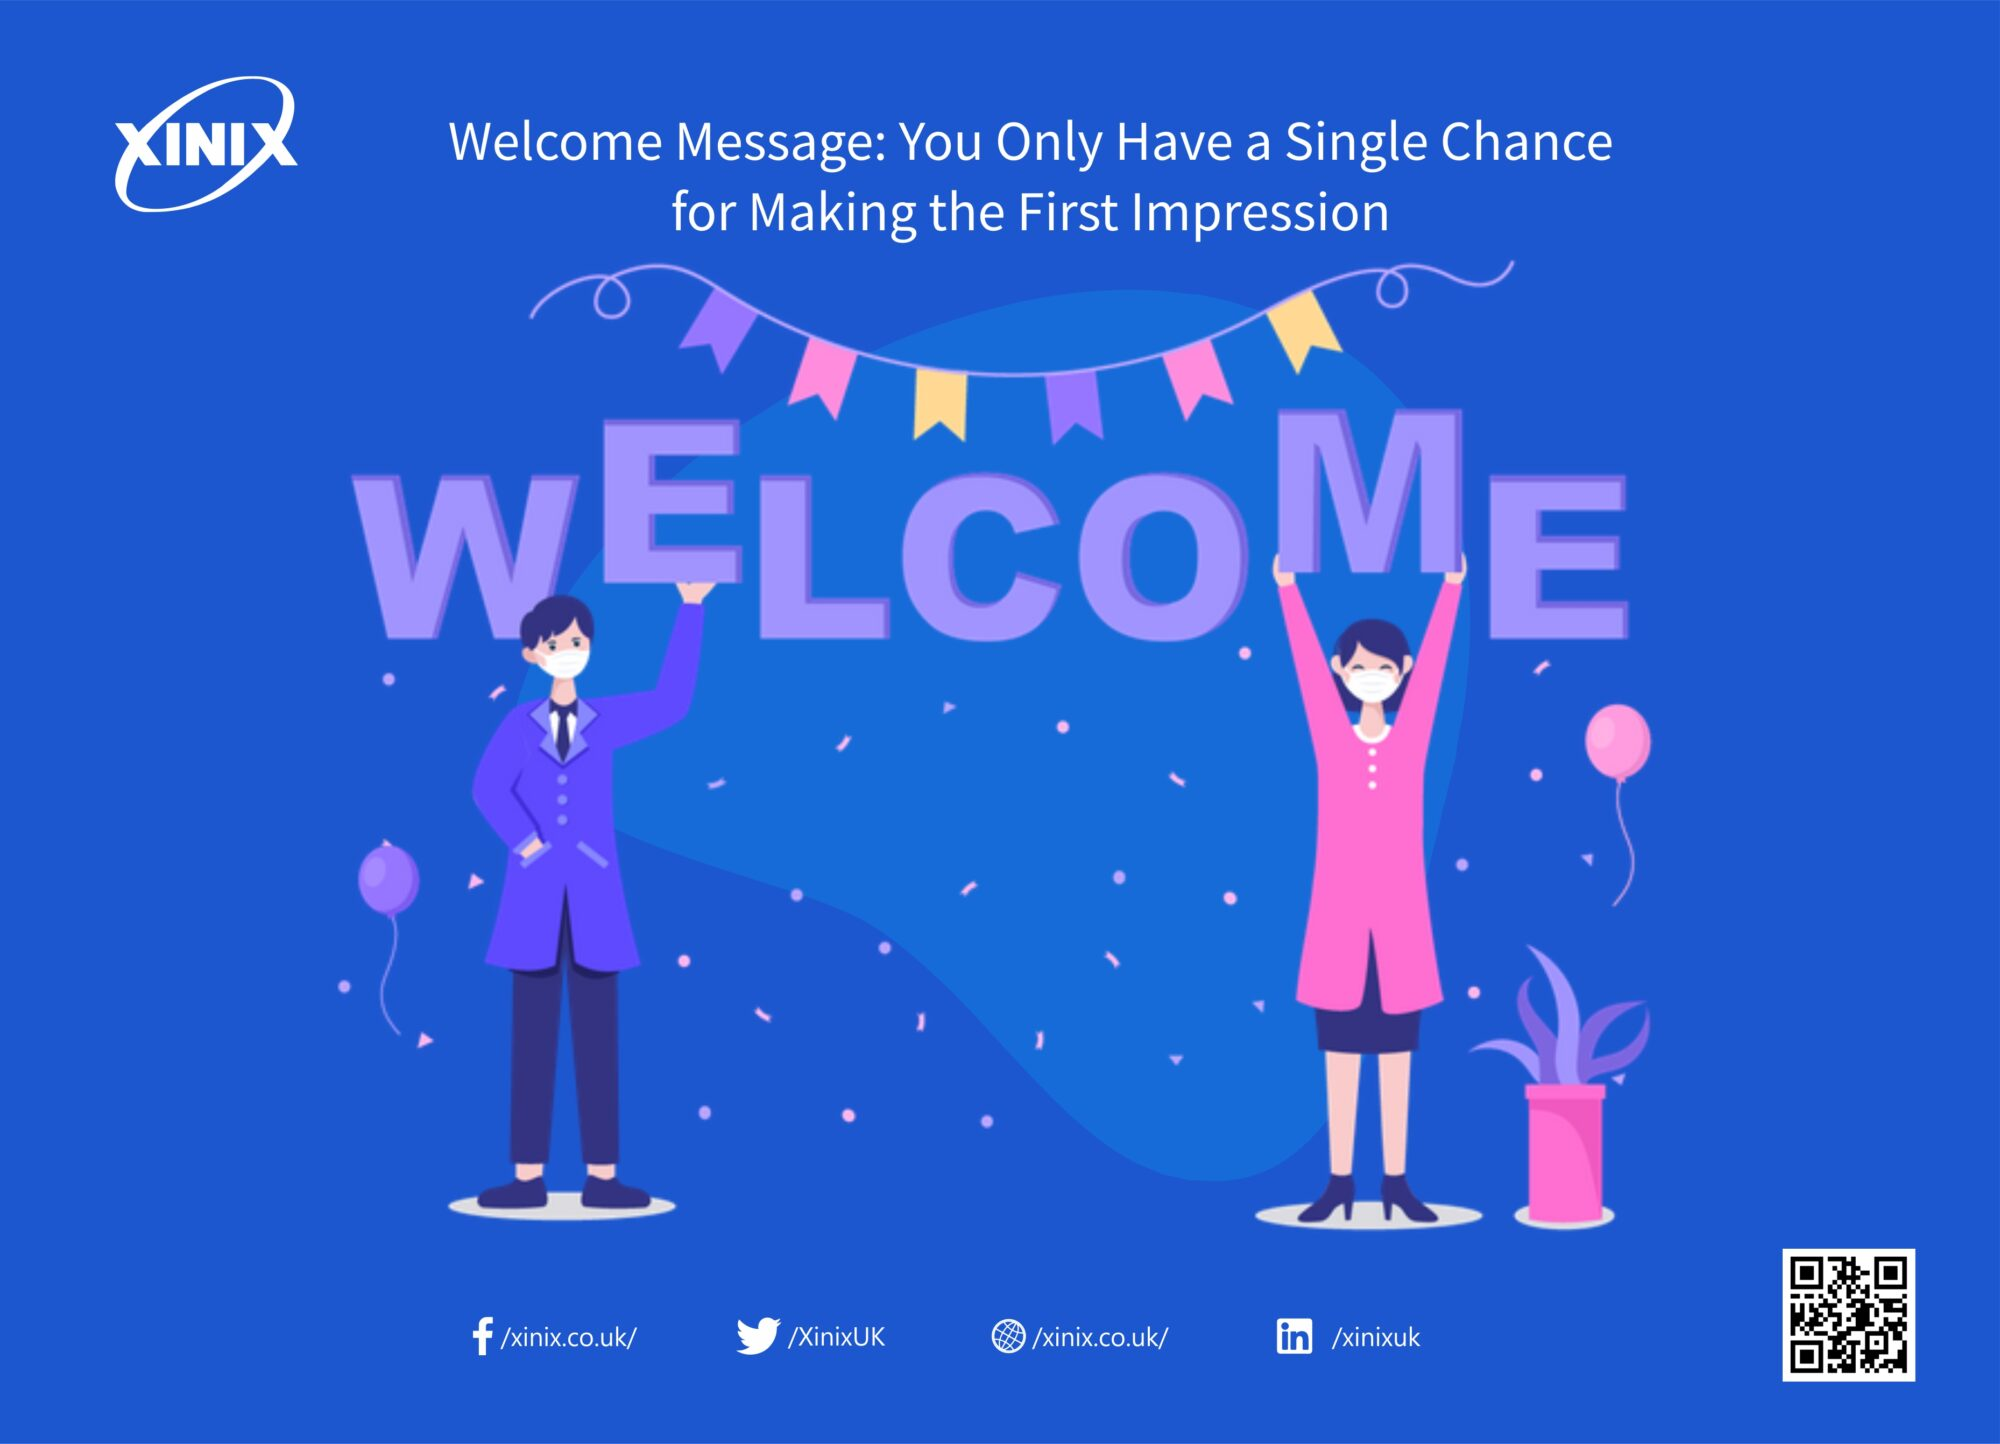 Welcome Message: You Only Have a Single Chance for Making the First Impression